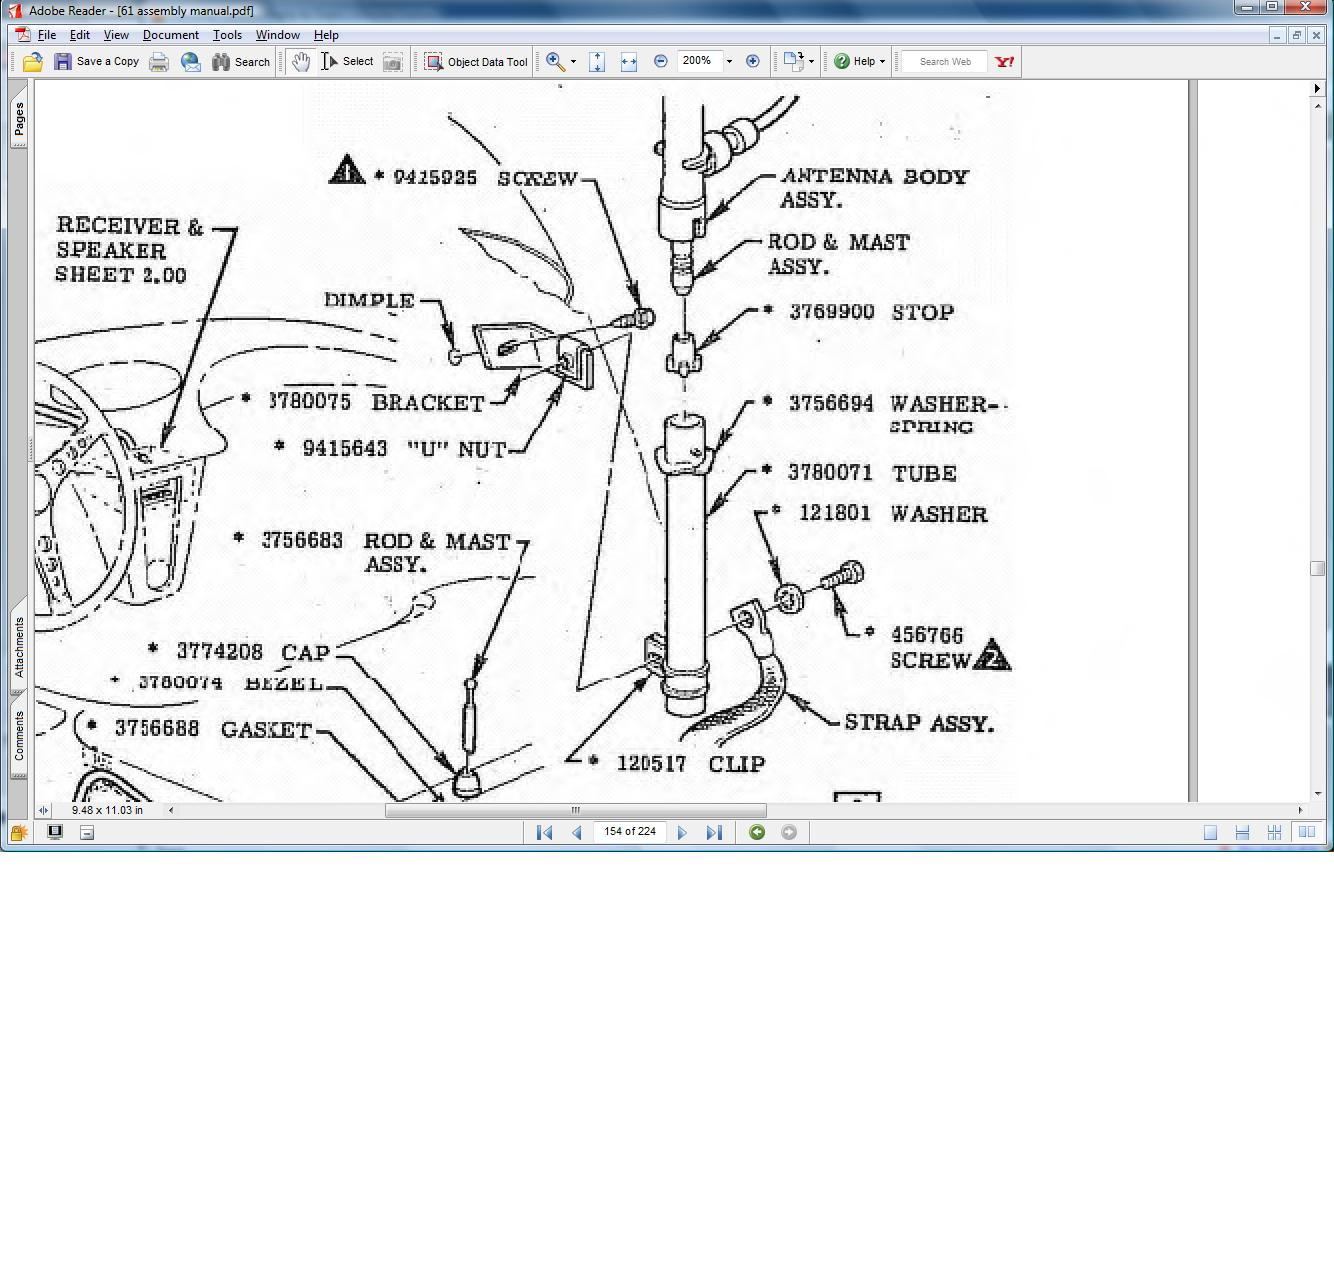 C2 Corvette Tail Light Wiring Diagram. Corvette. Auto